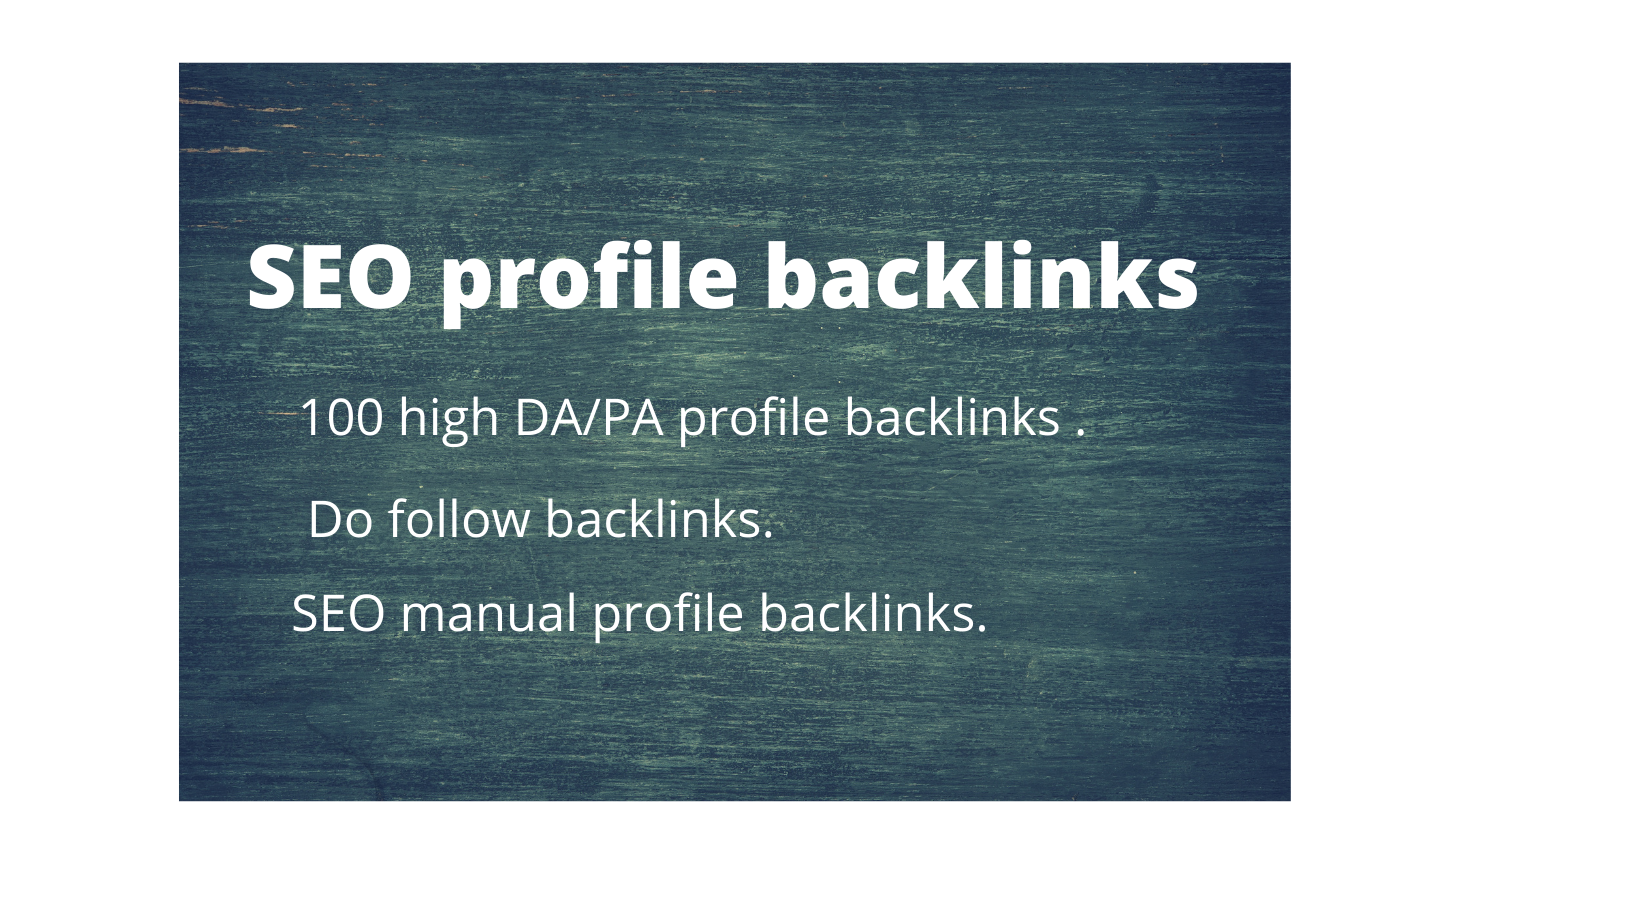 I will do 100 high DA/PA profile backlinks for SEO ranking.